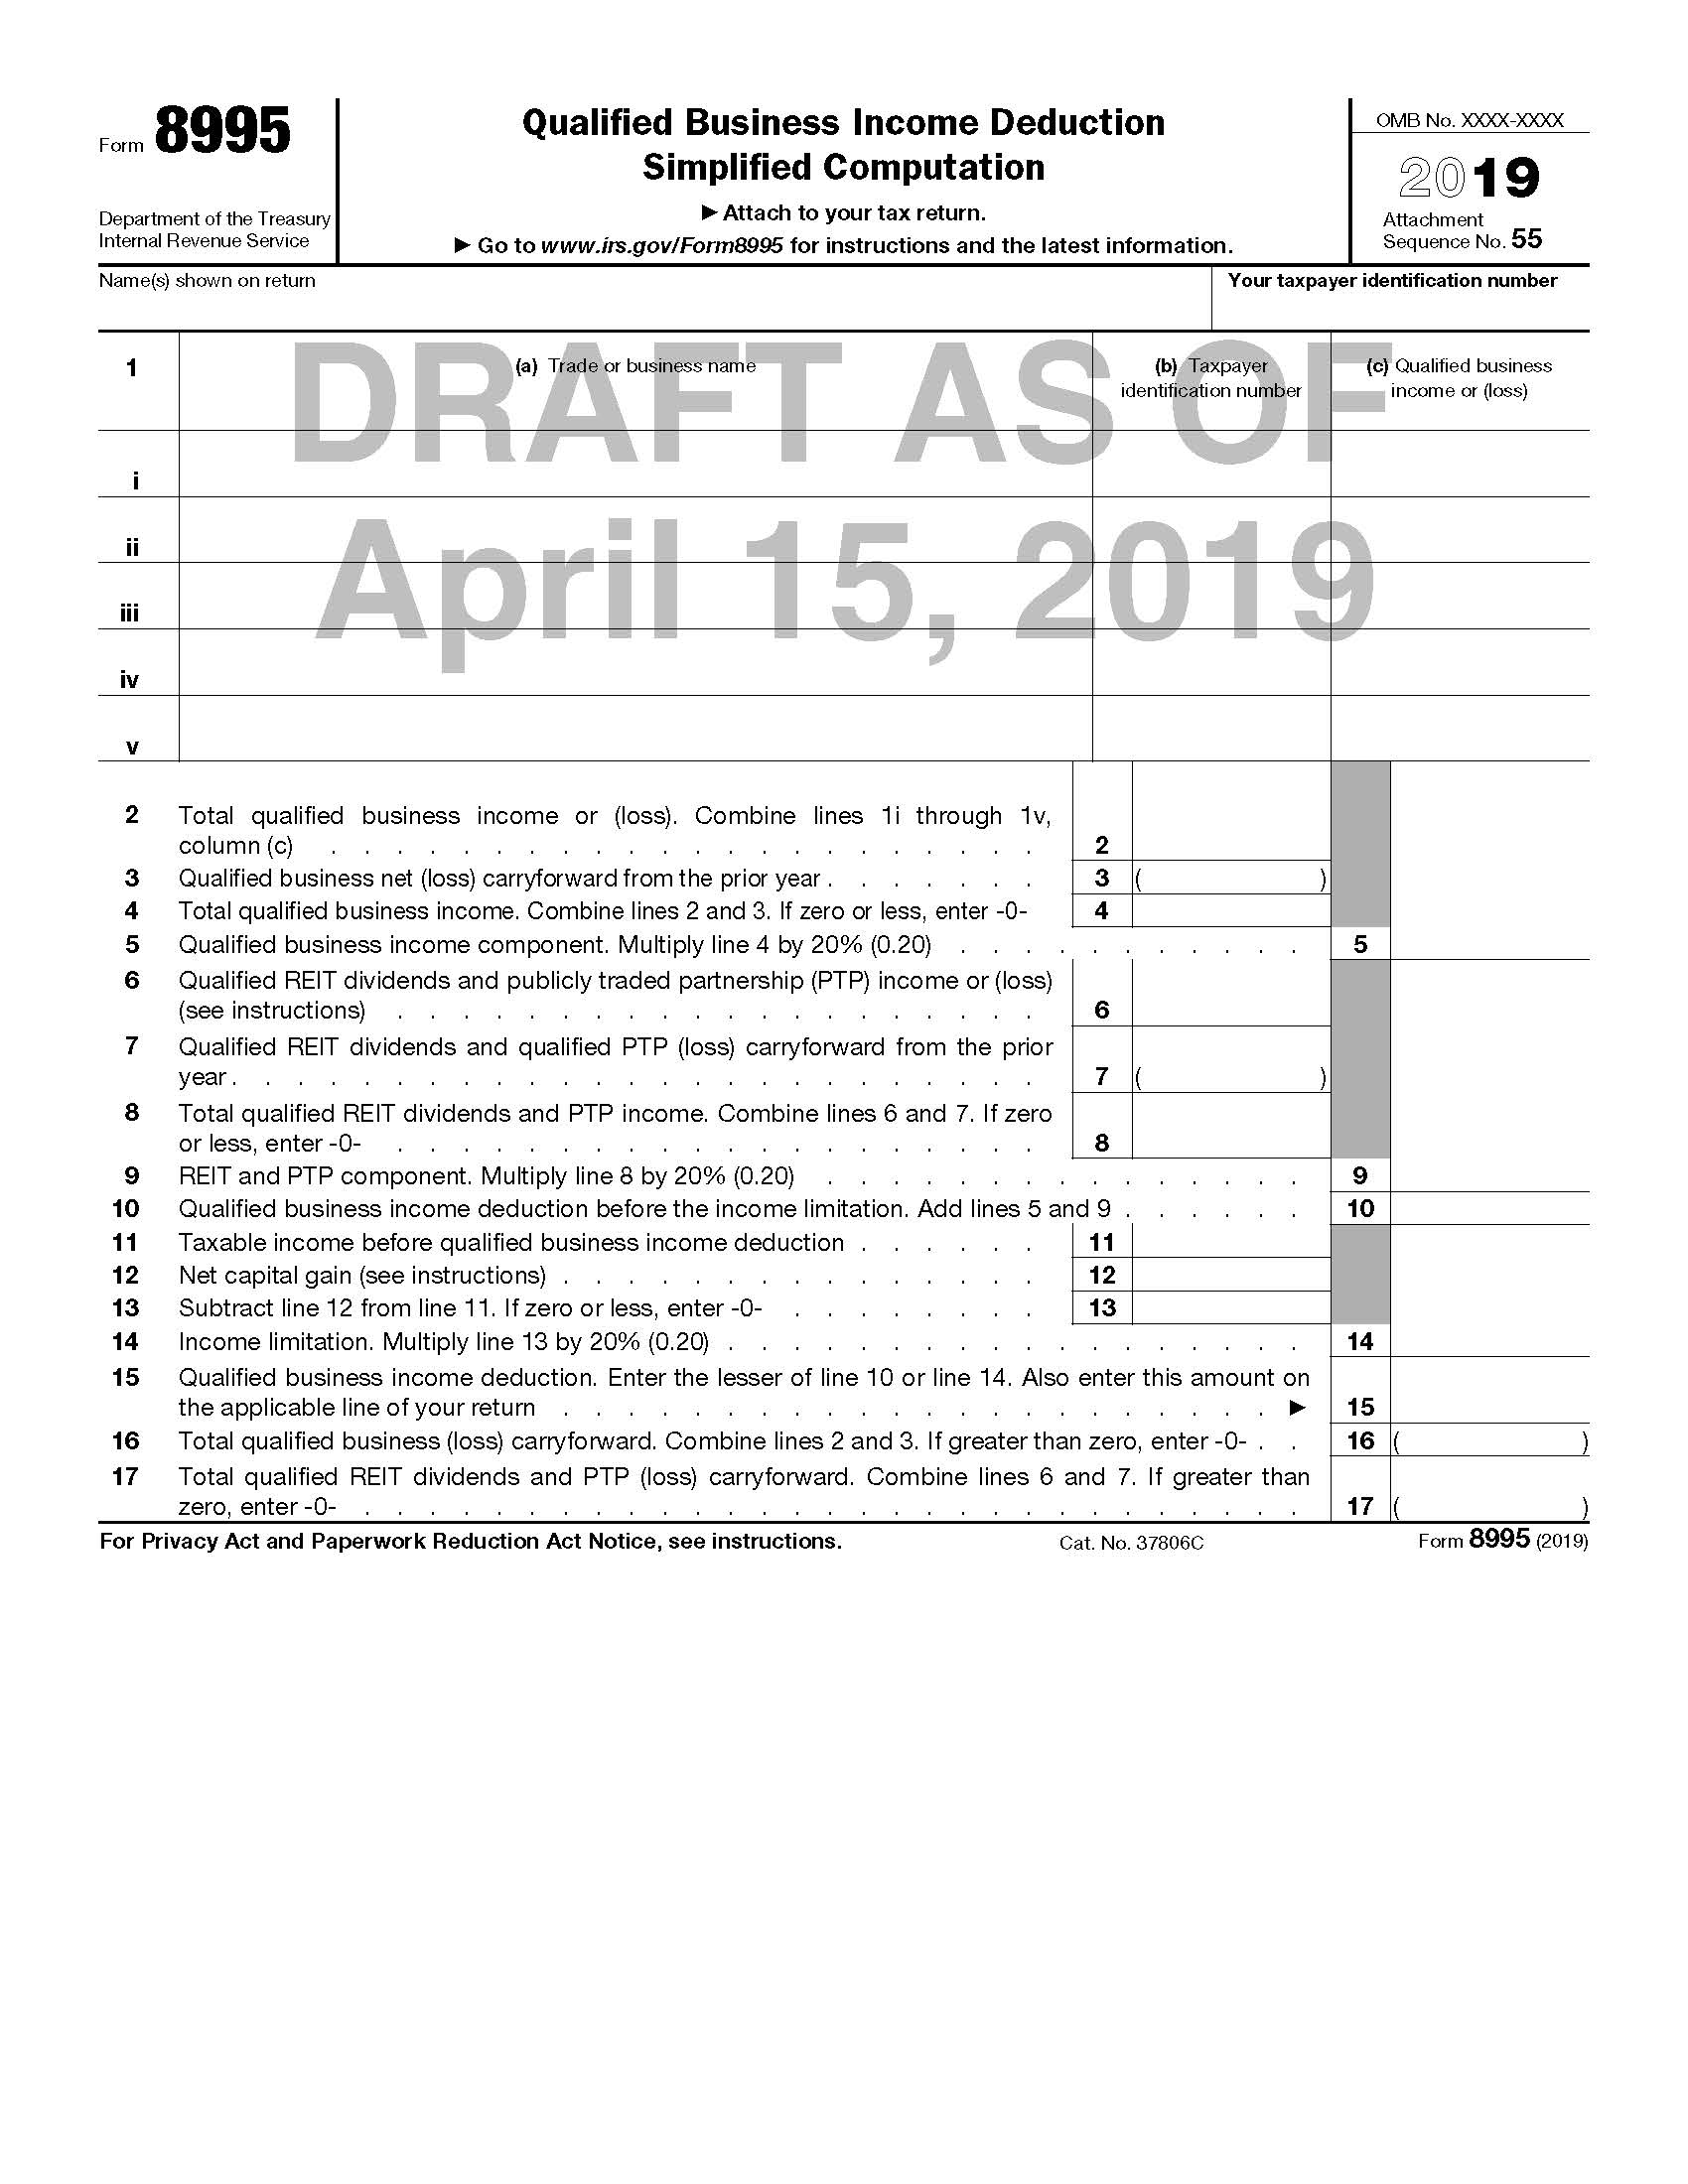 IRS Releases Drafts of Forms to Be Used to Calculate §199A